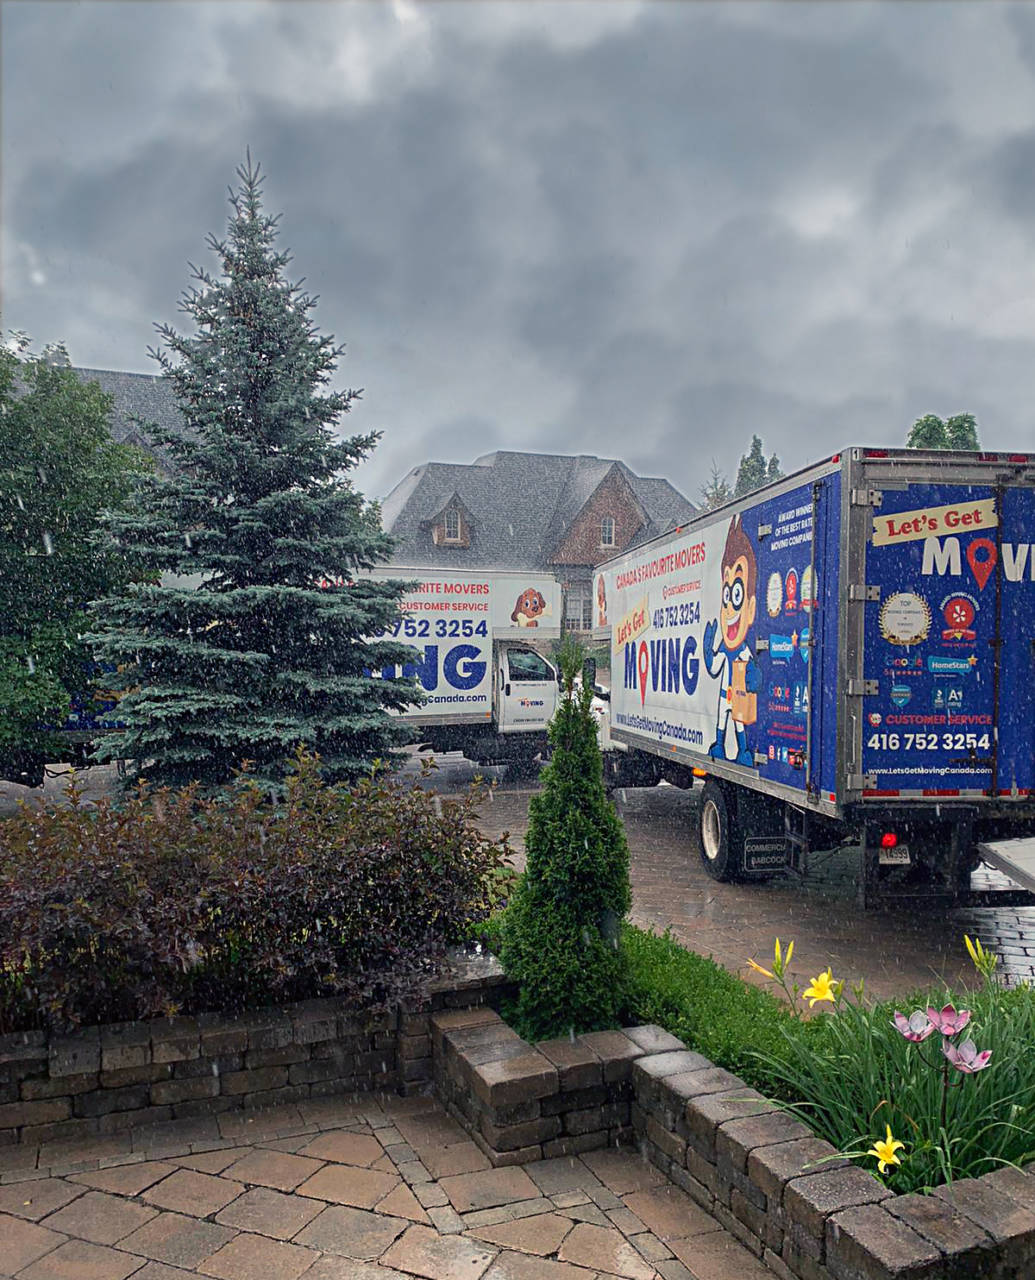 How can you find the best cheap movers in North York?